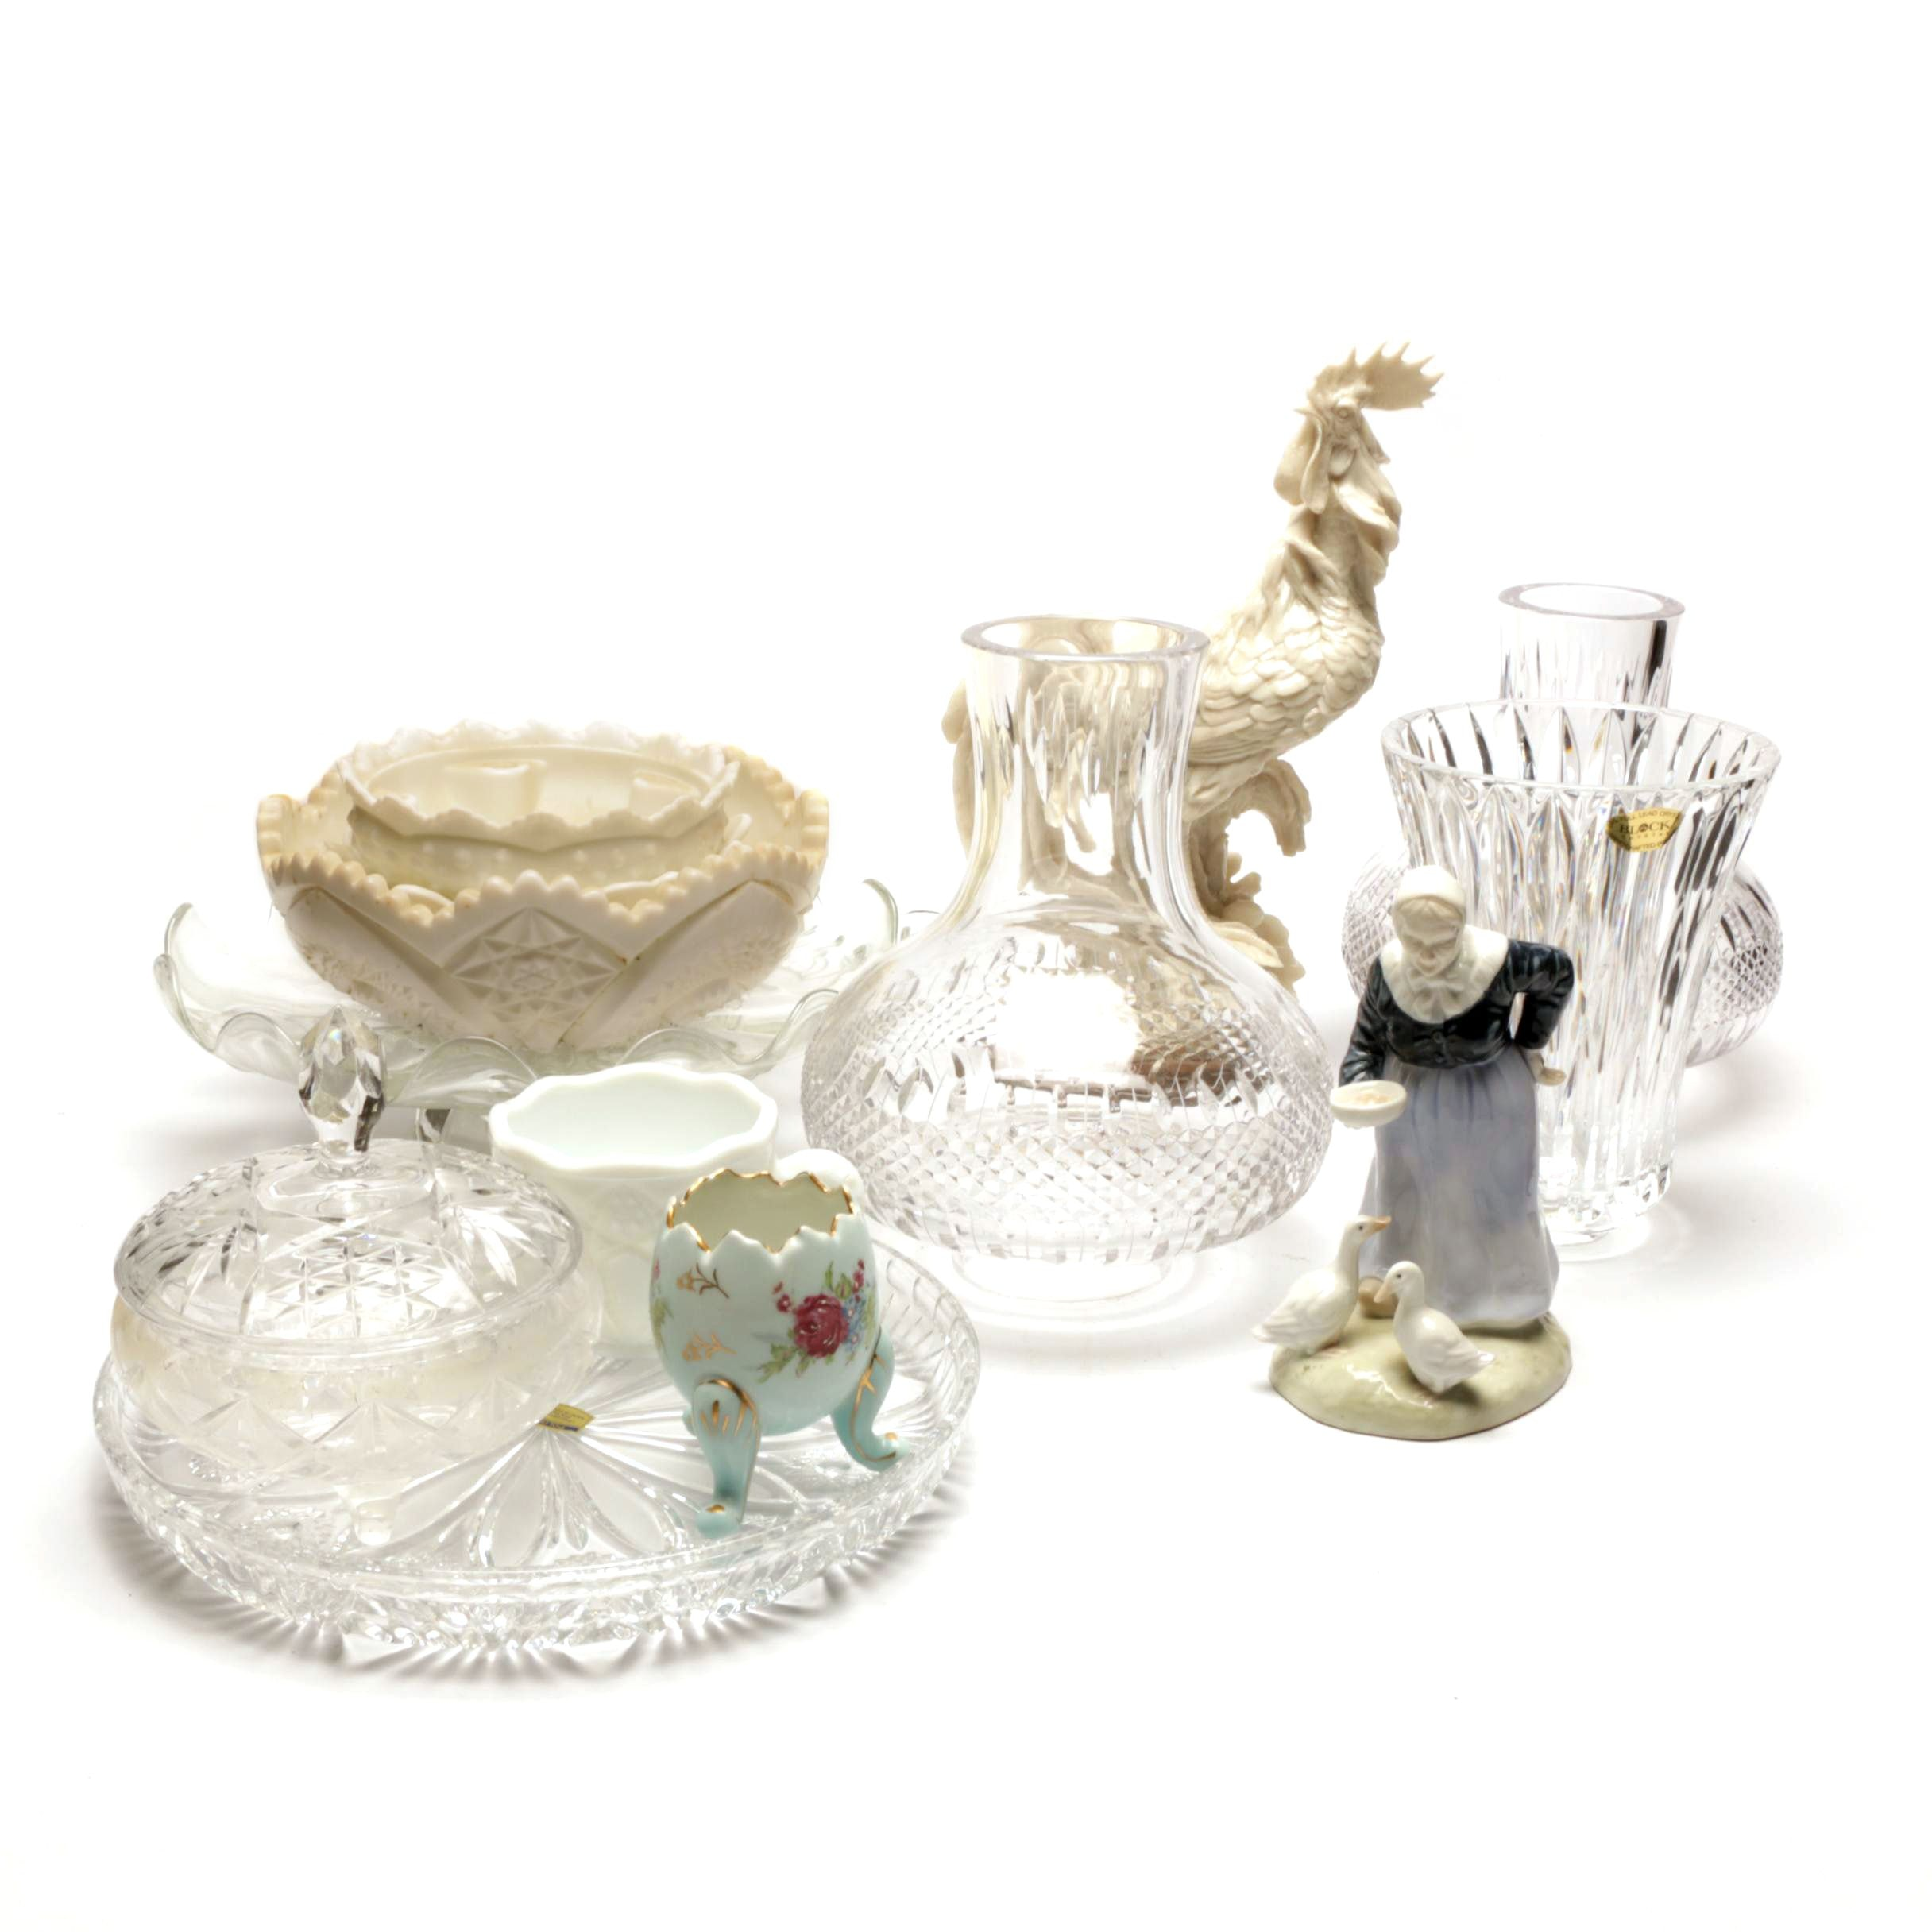 Cut and Molded Glass and Poultry Themed Figurines